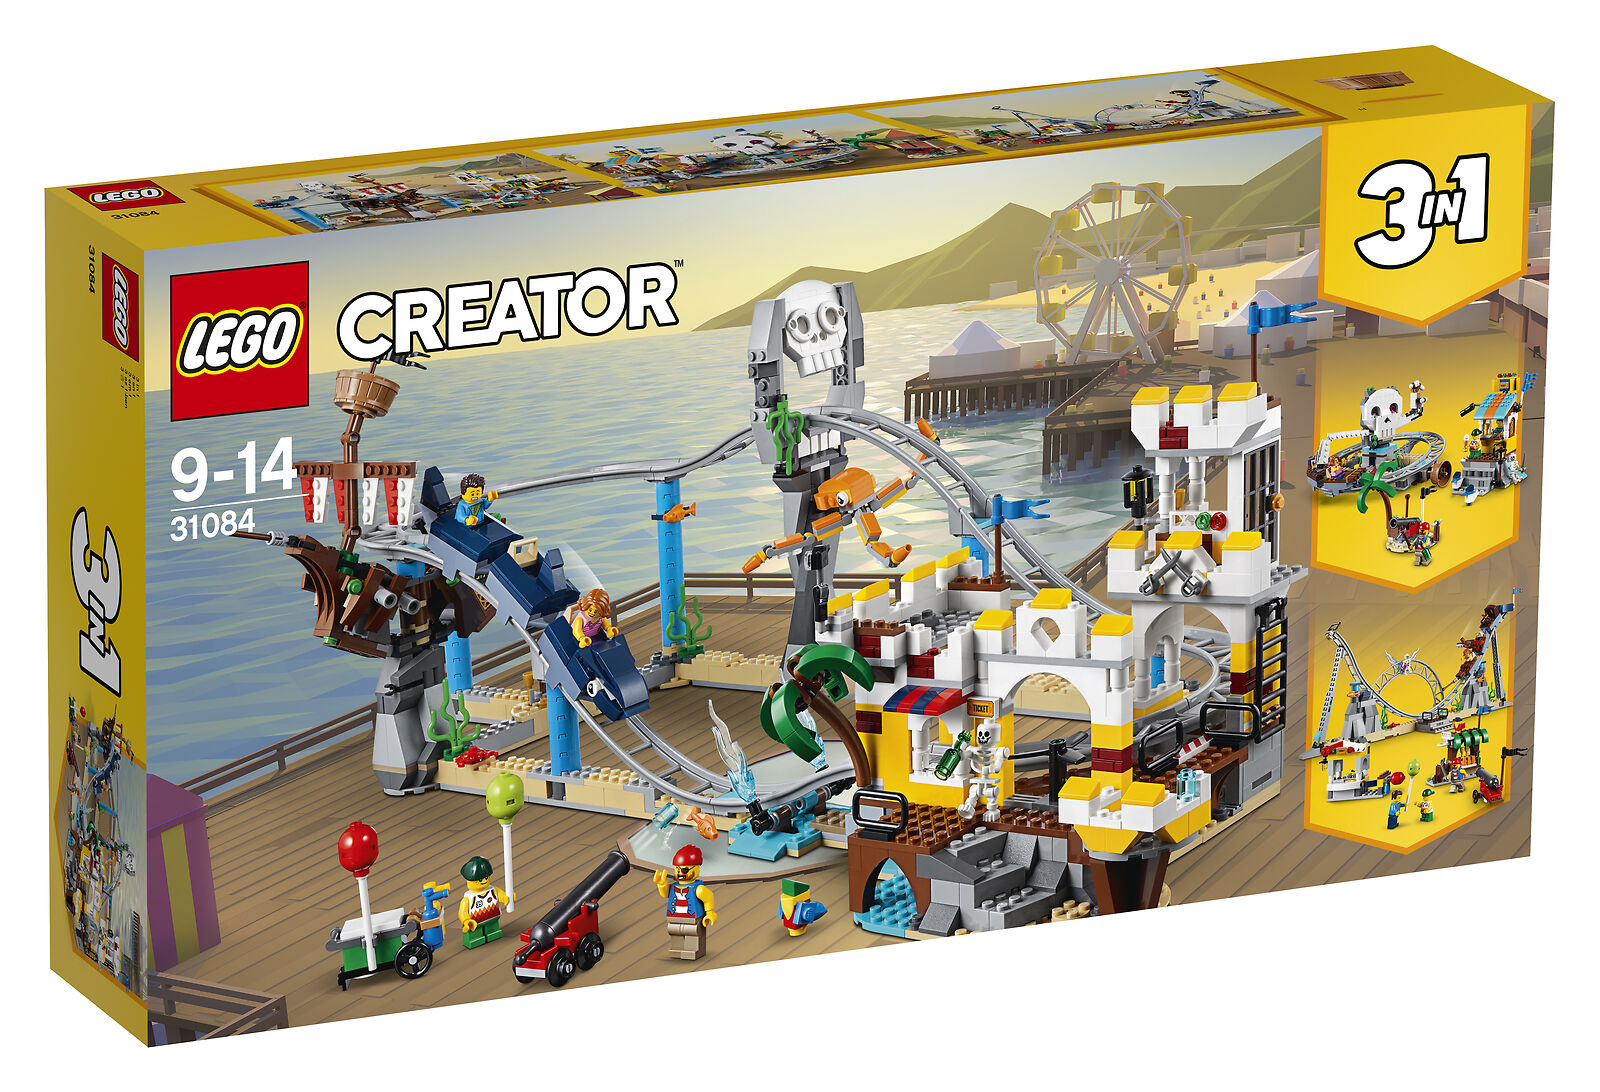 (NEW) LEGO Creator 3 in 1 Pirate Roller Coaster 31084 Building Kit (923 Piece)